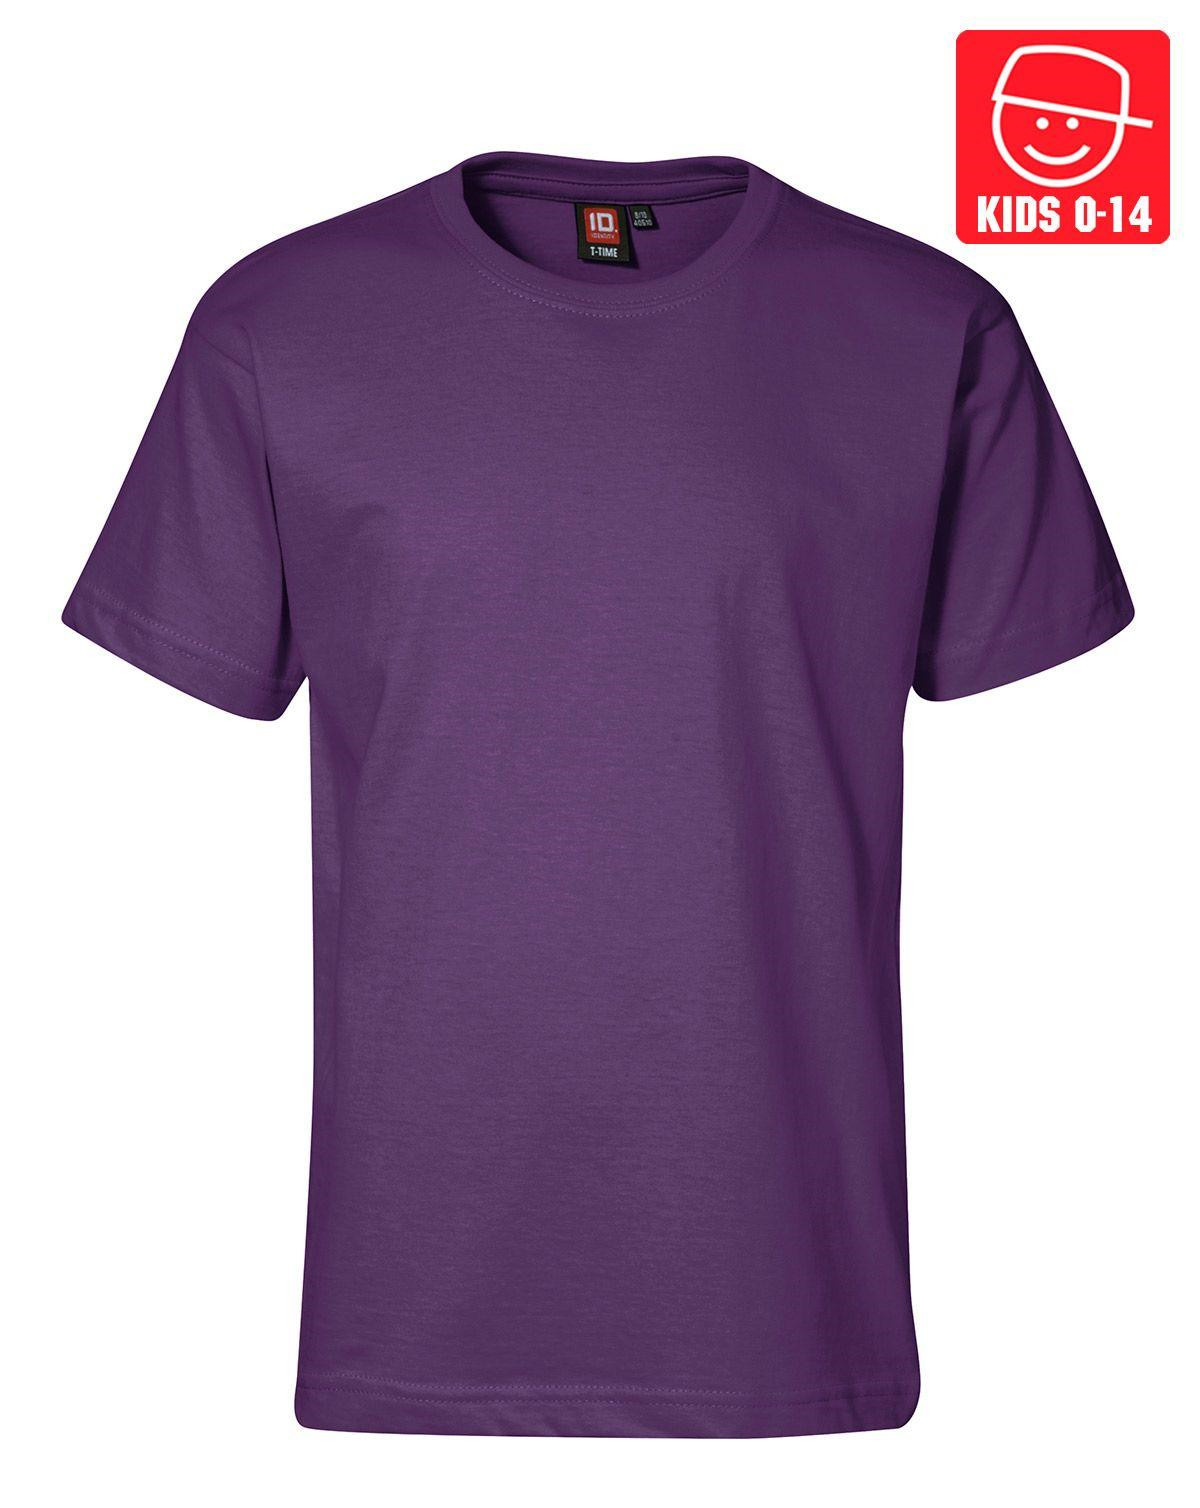 Image of   ID T-TIME T-shirt (Lilla, 152)